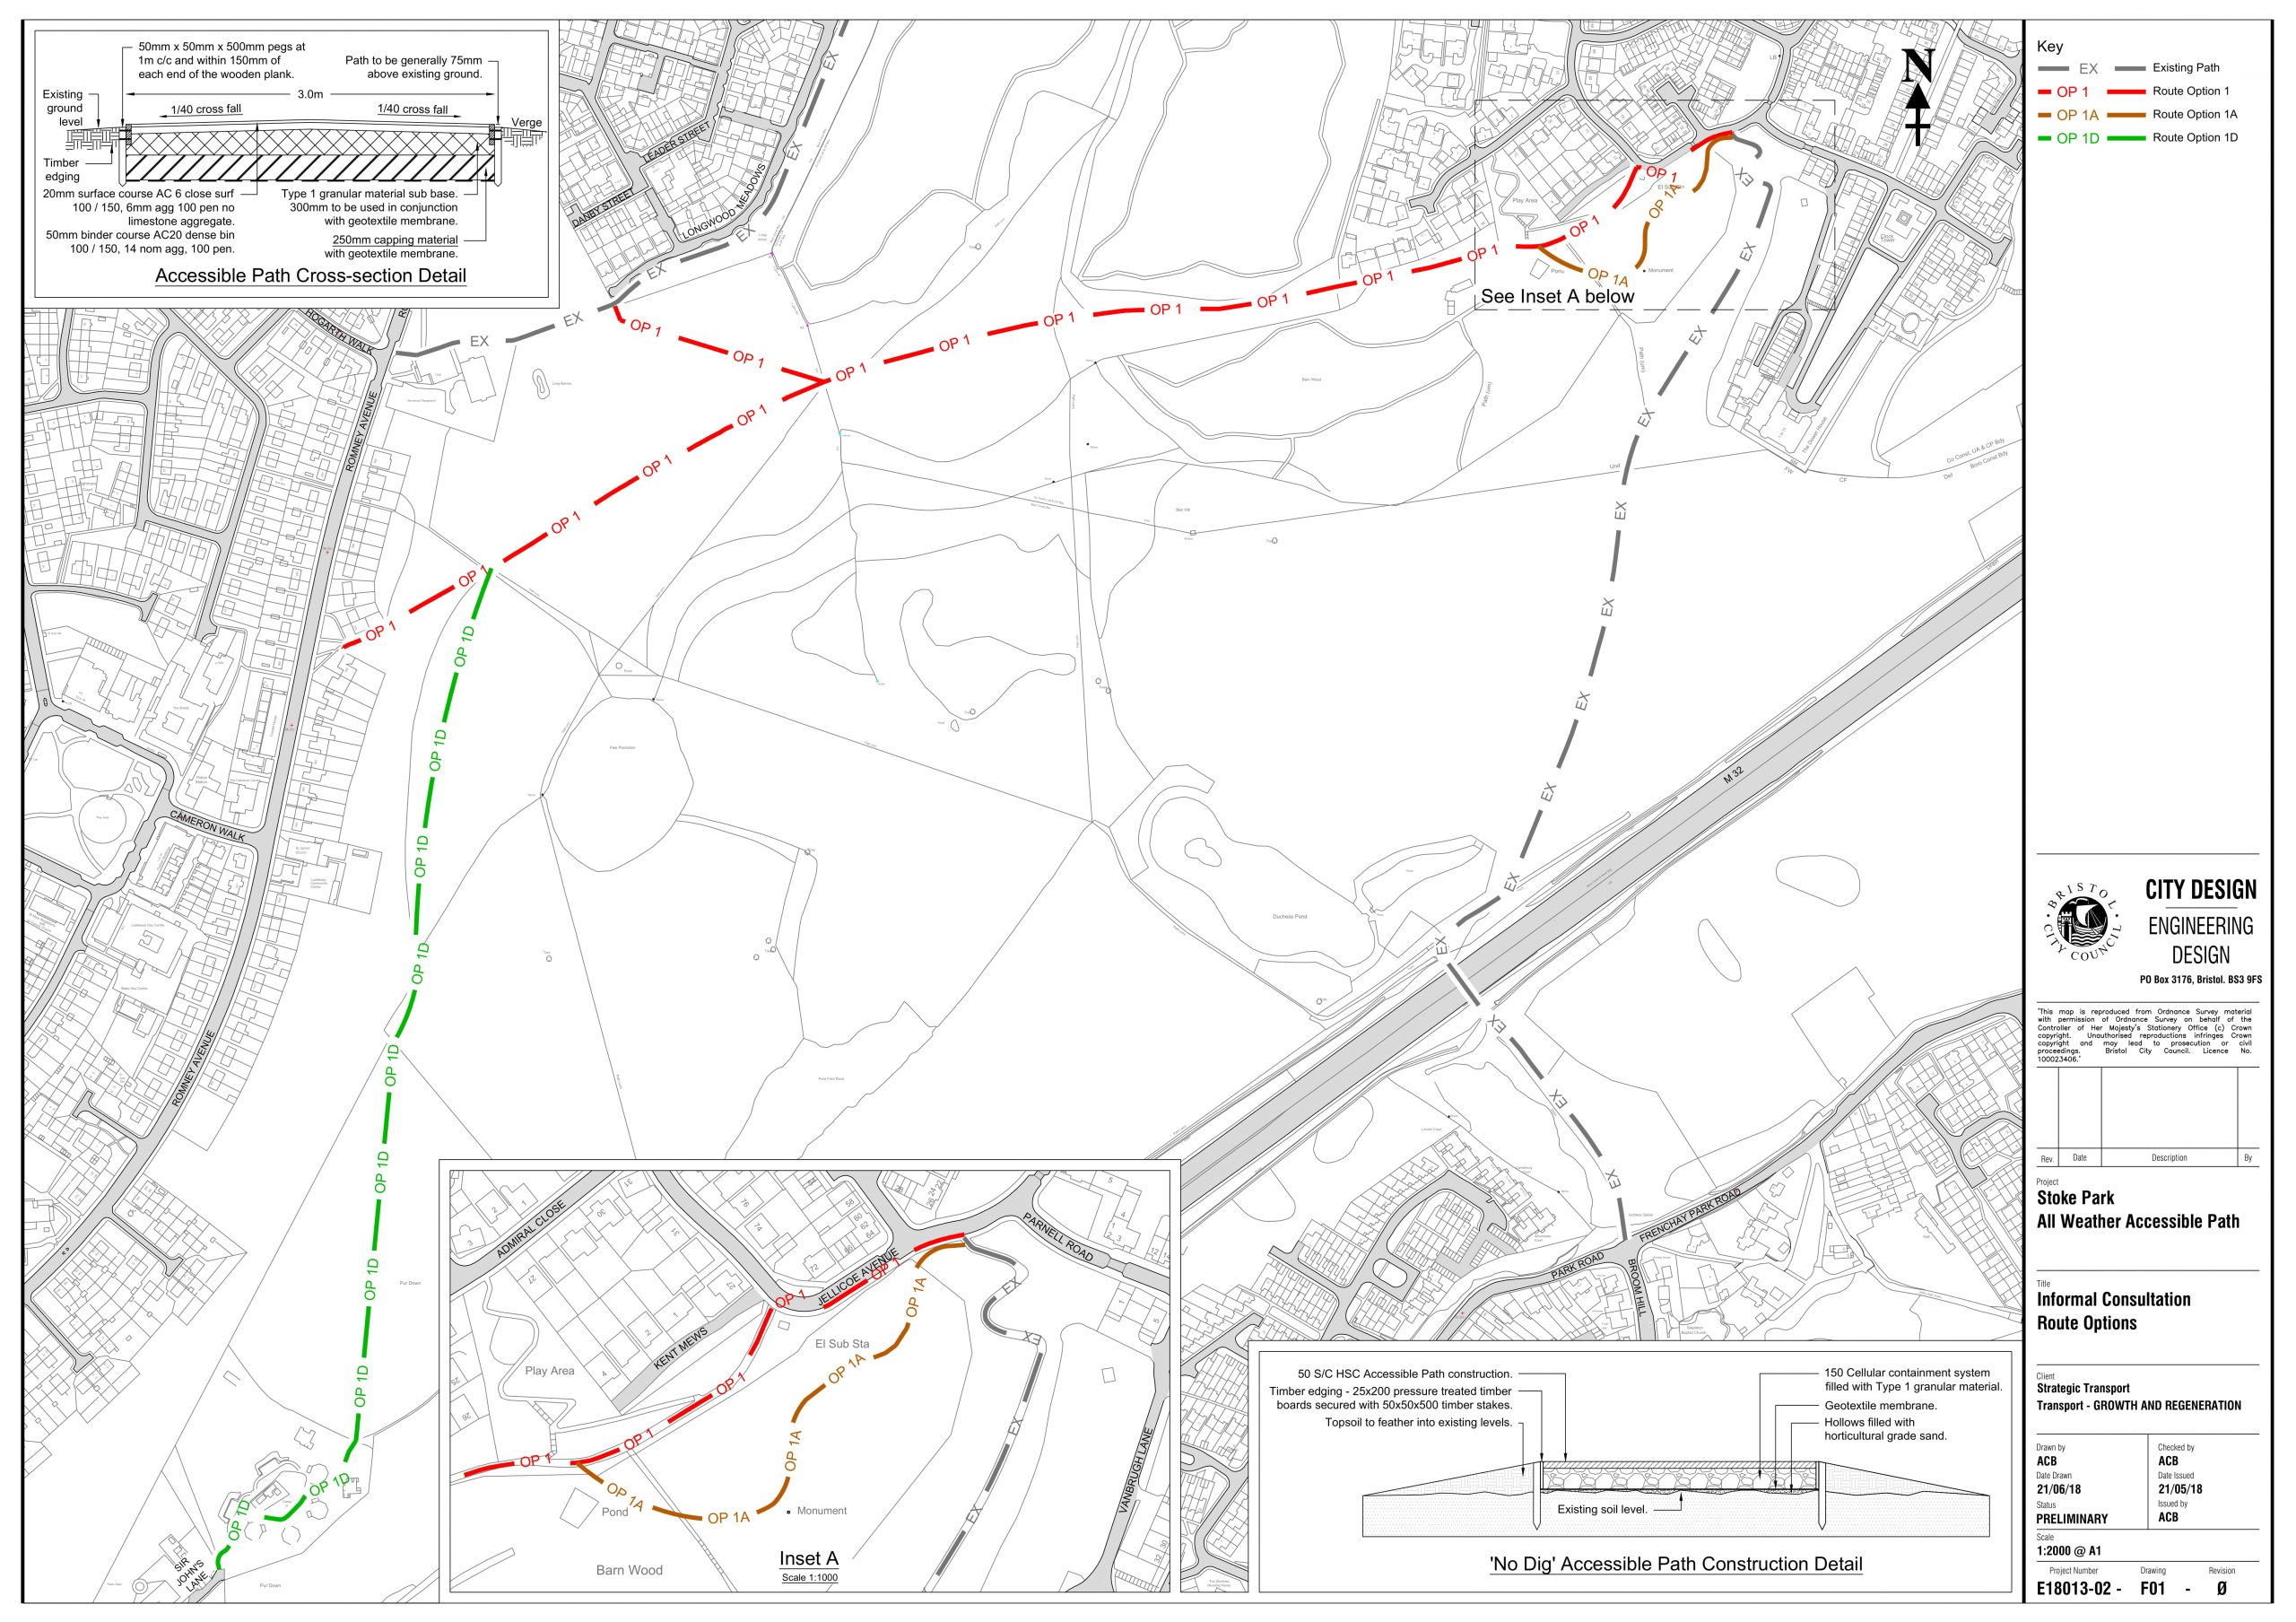 Stoke Park accessible path proposal map